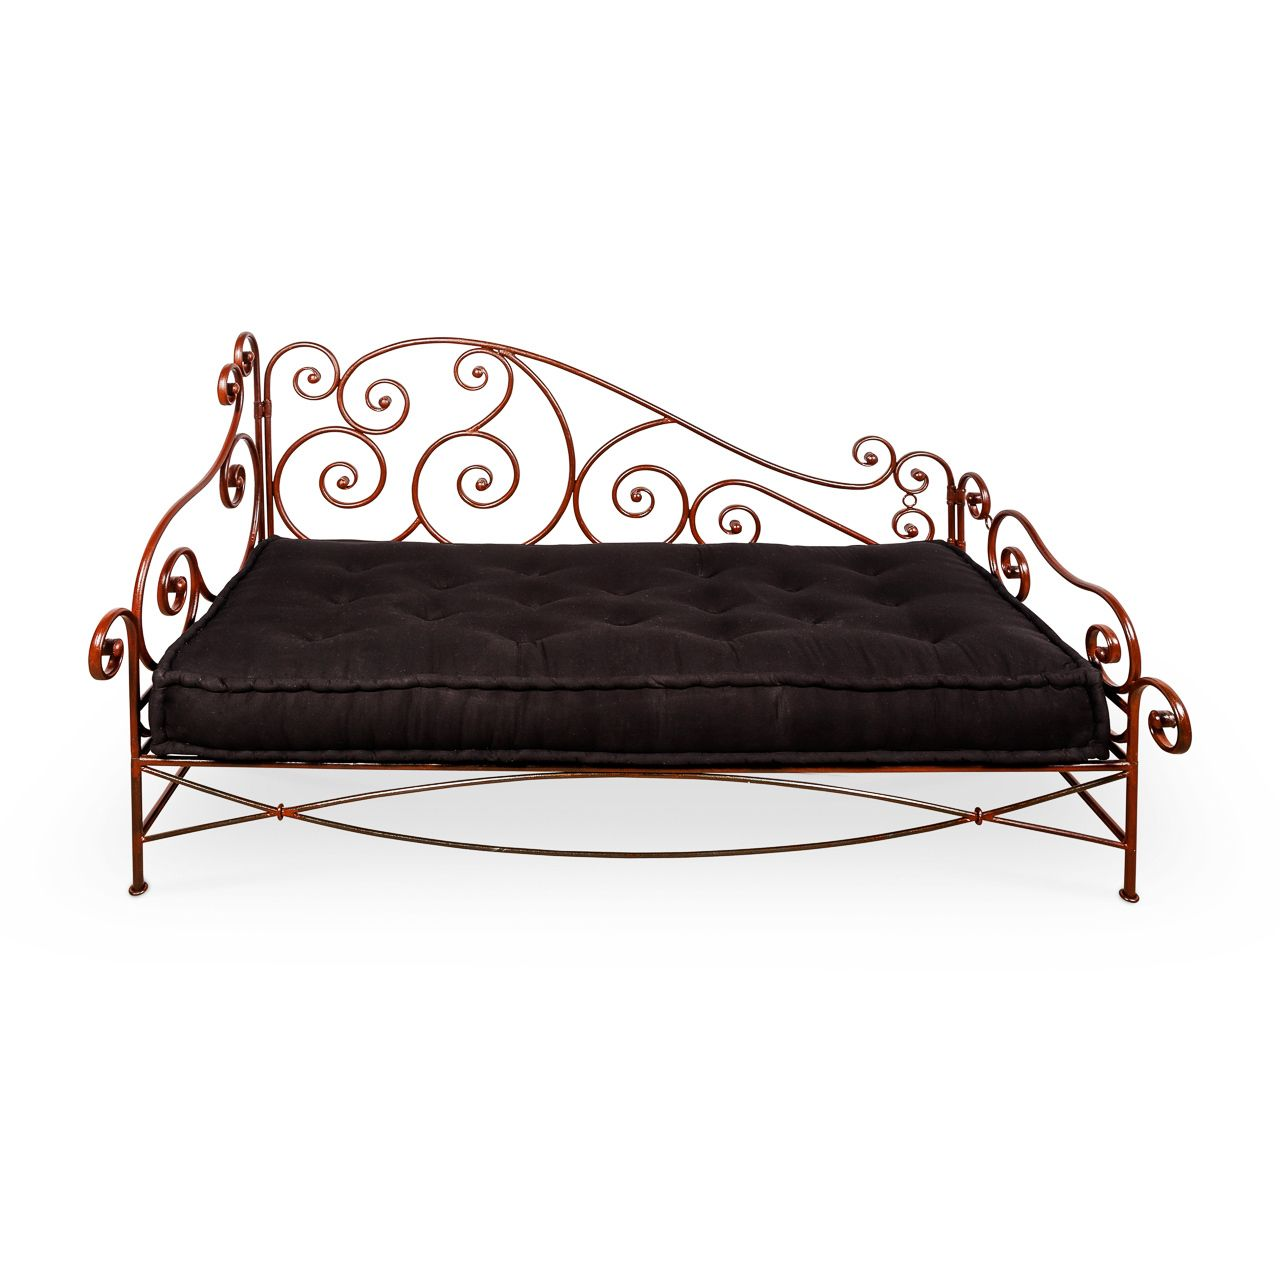 - Moroccan Wrought Iron Day Beds Outdoors Hand Crafted $1495